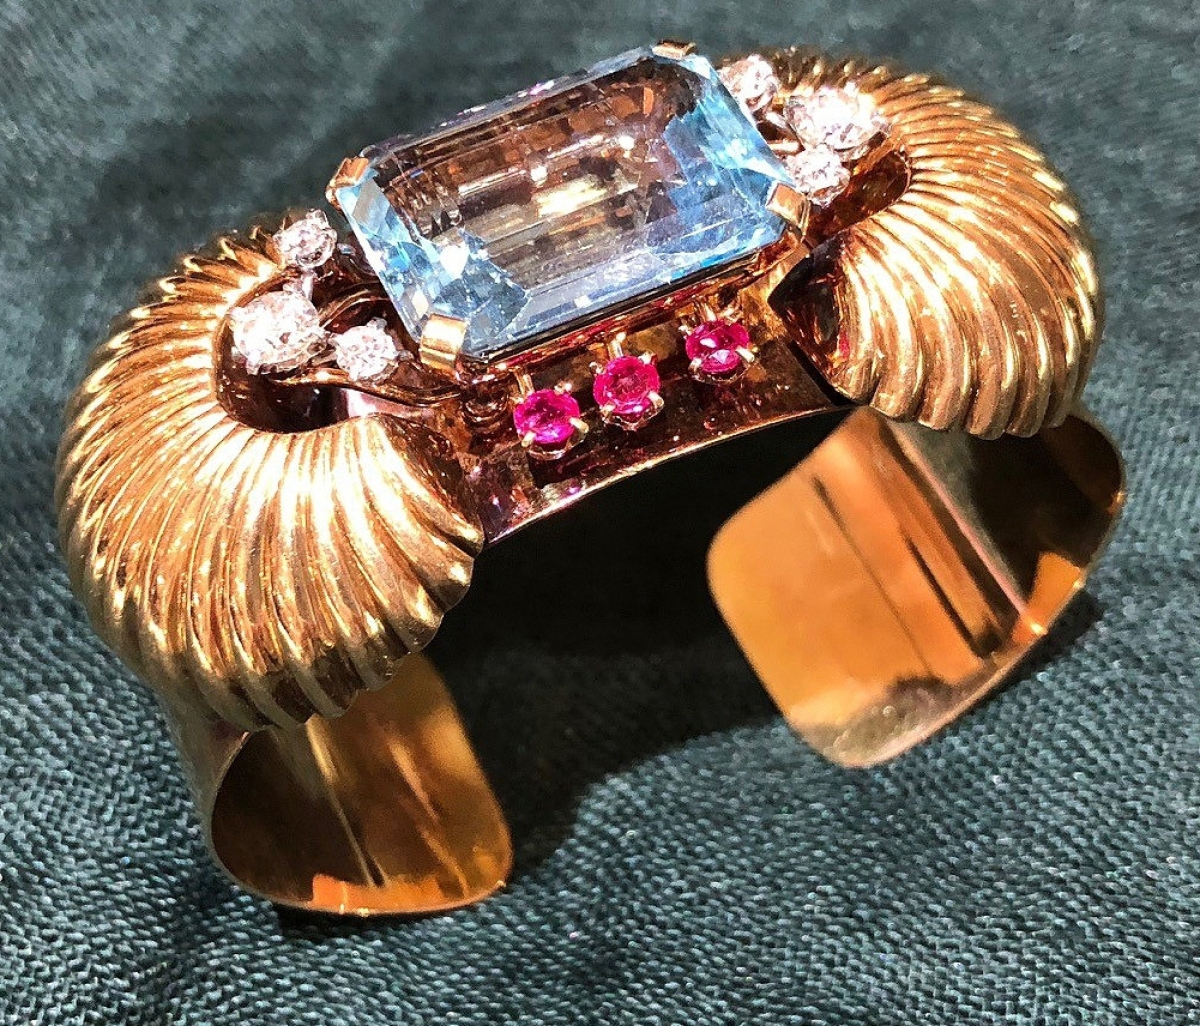 Traders in full swing at new york city jewelry watch show for Antique jewelry stores nyc